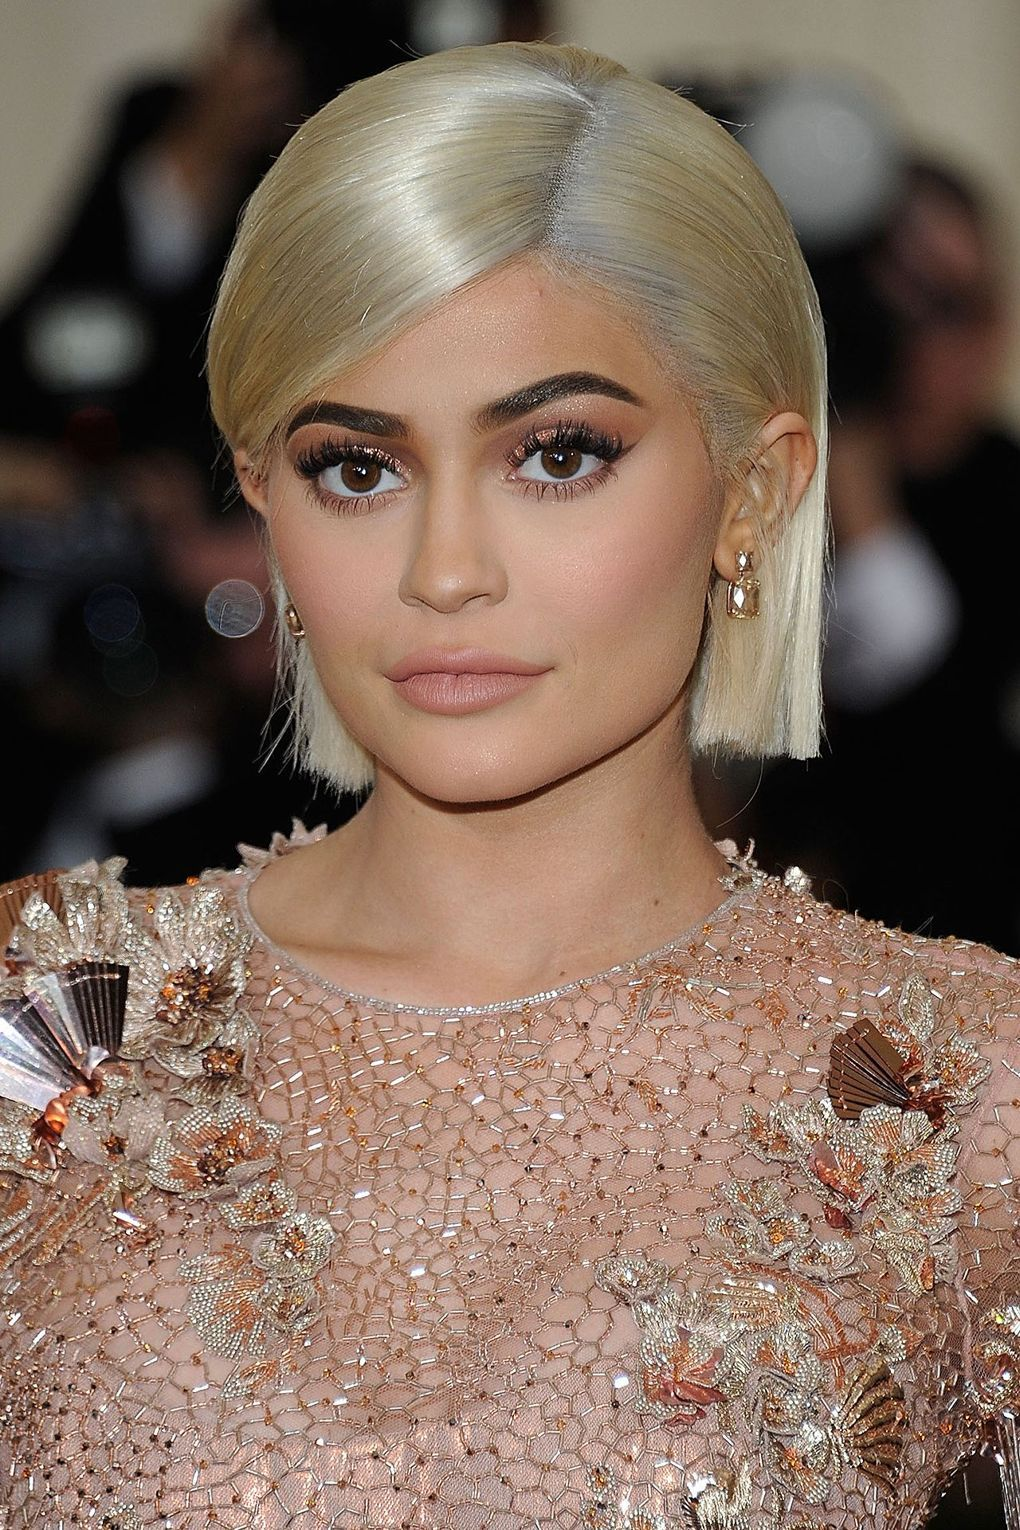 Change Your Hairstyle Online Women | Bobs, Bob cut hairstyles and ...